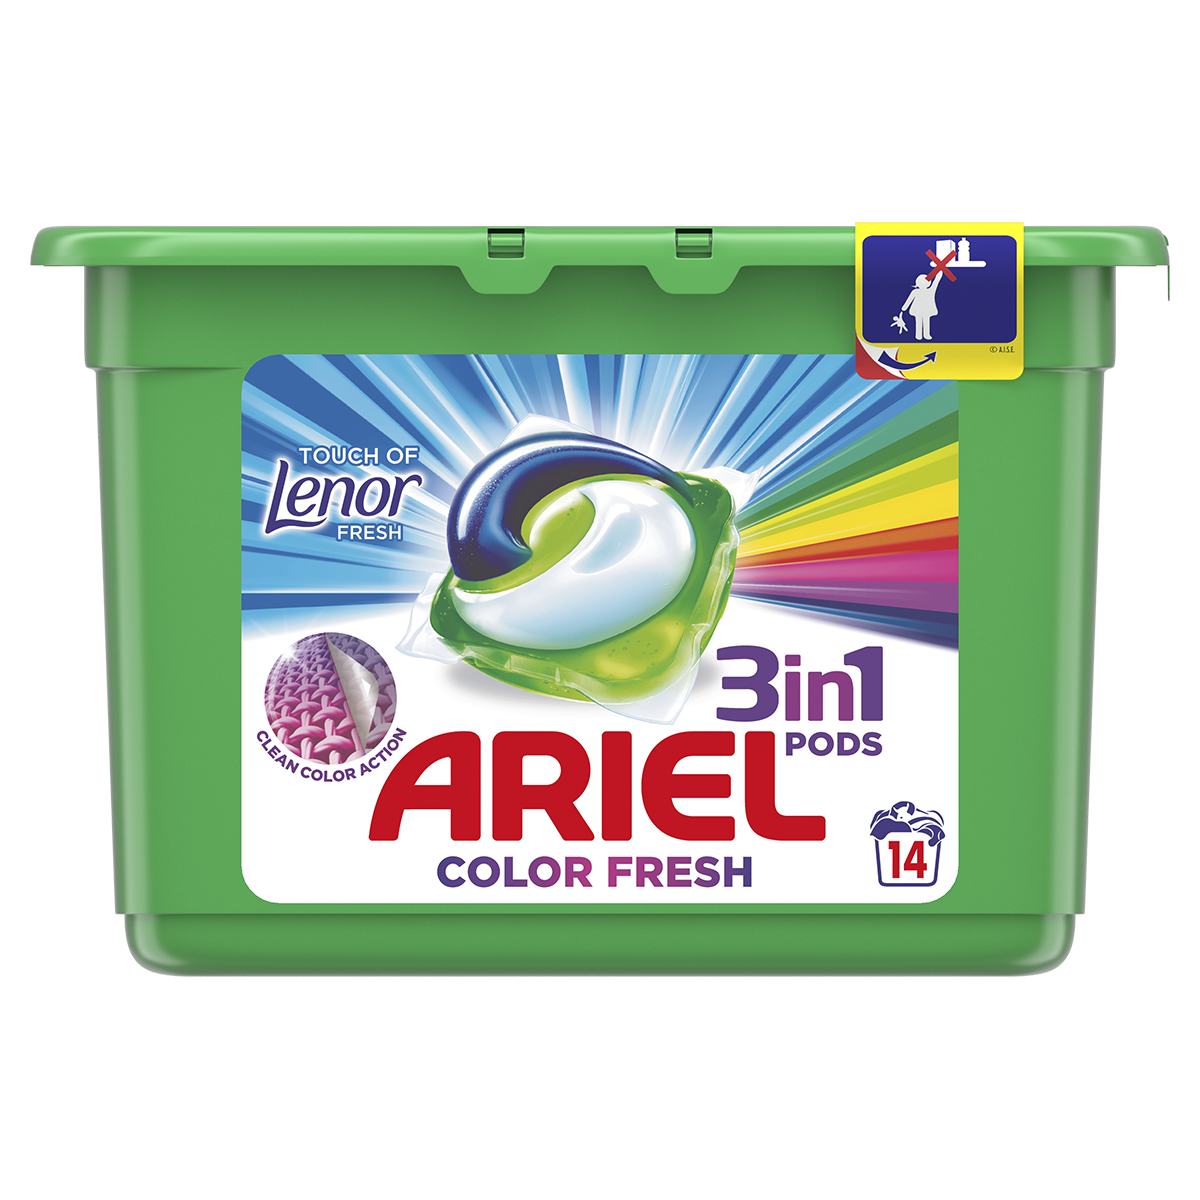 ARIEL Touch of Lenor Fresh All in 1 (14 ks) – gélové pracie kapsuly